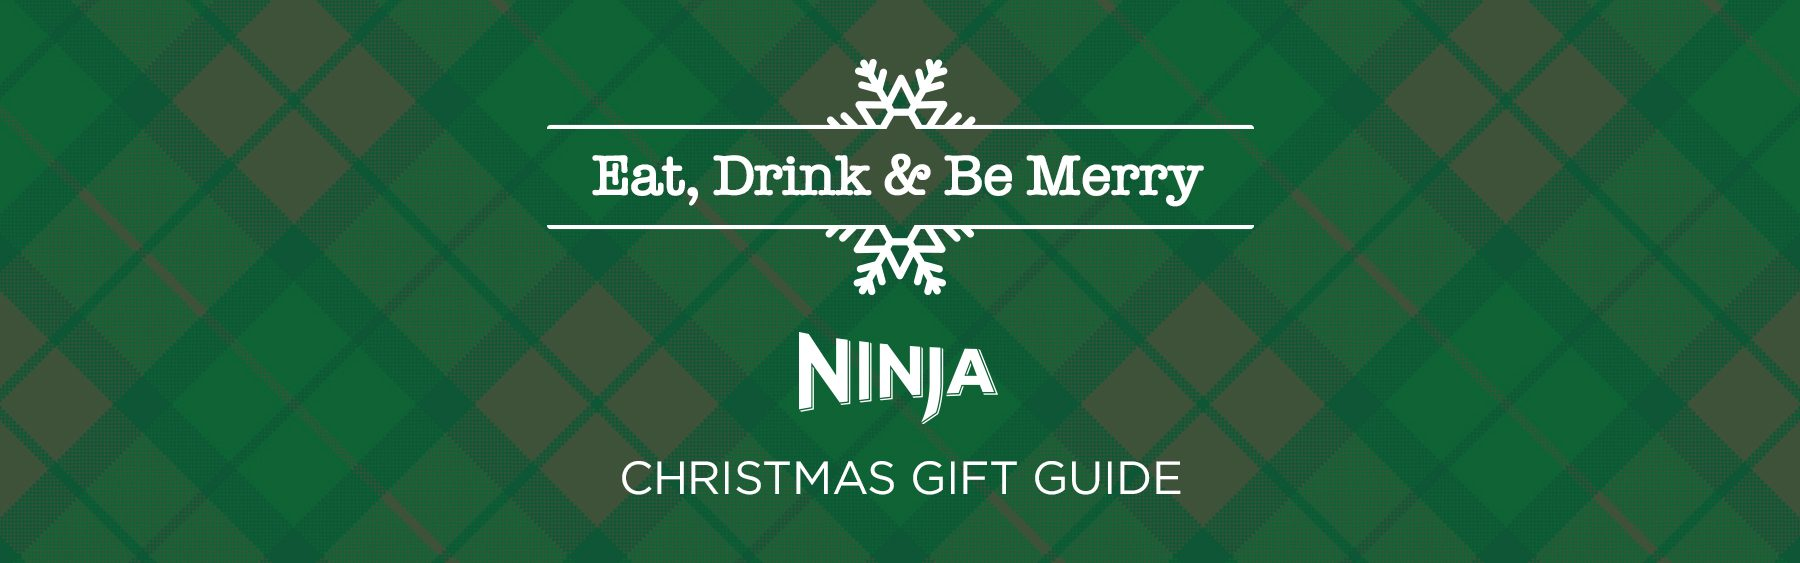 Eat, Drink & Be Merry - Ninja Christmas Gift Guide